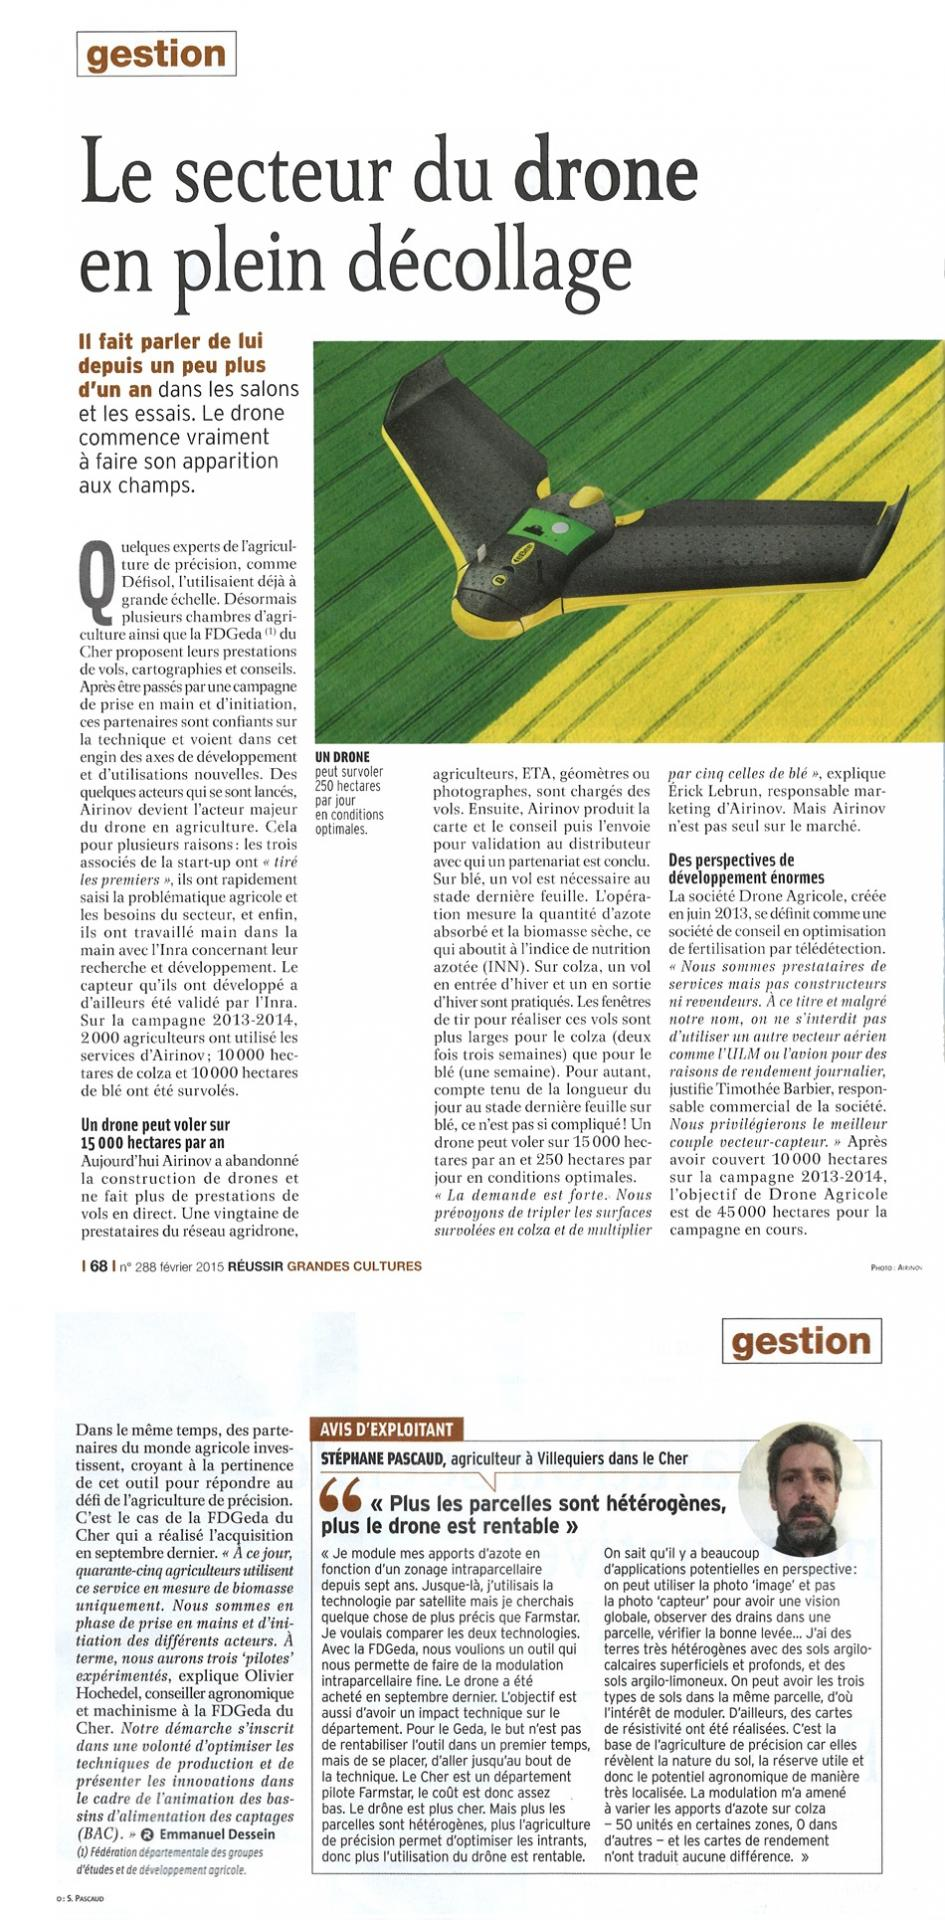 Article drone